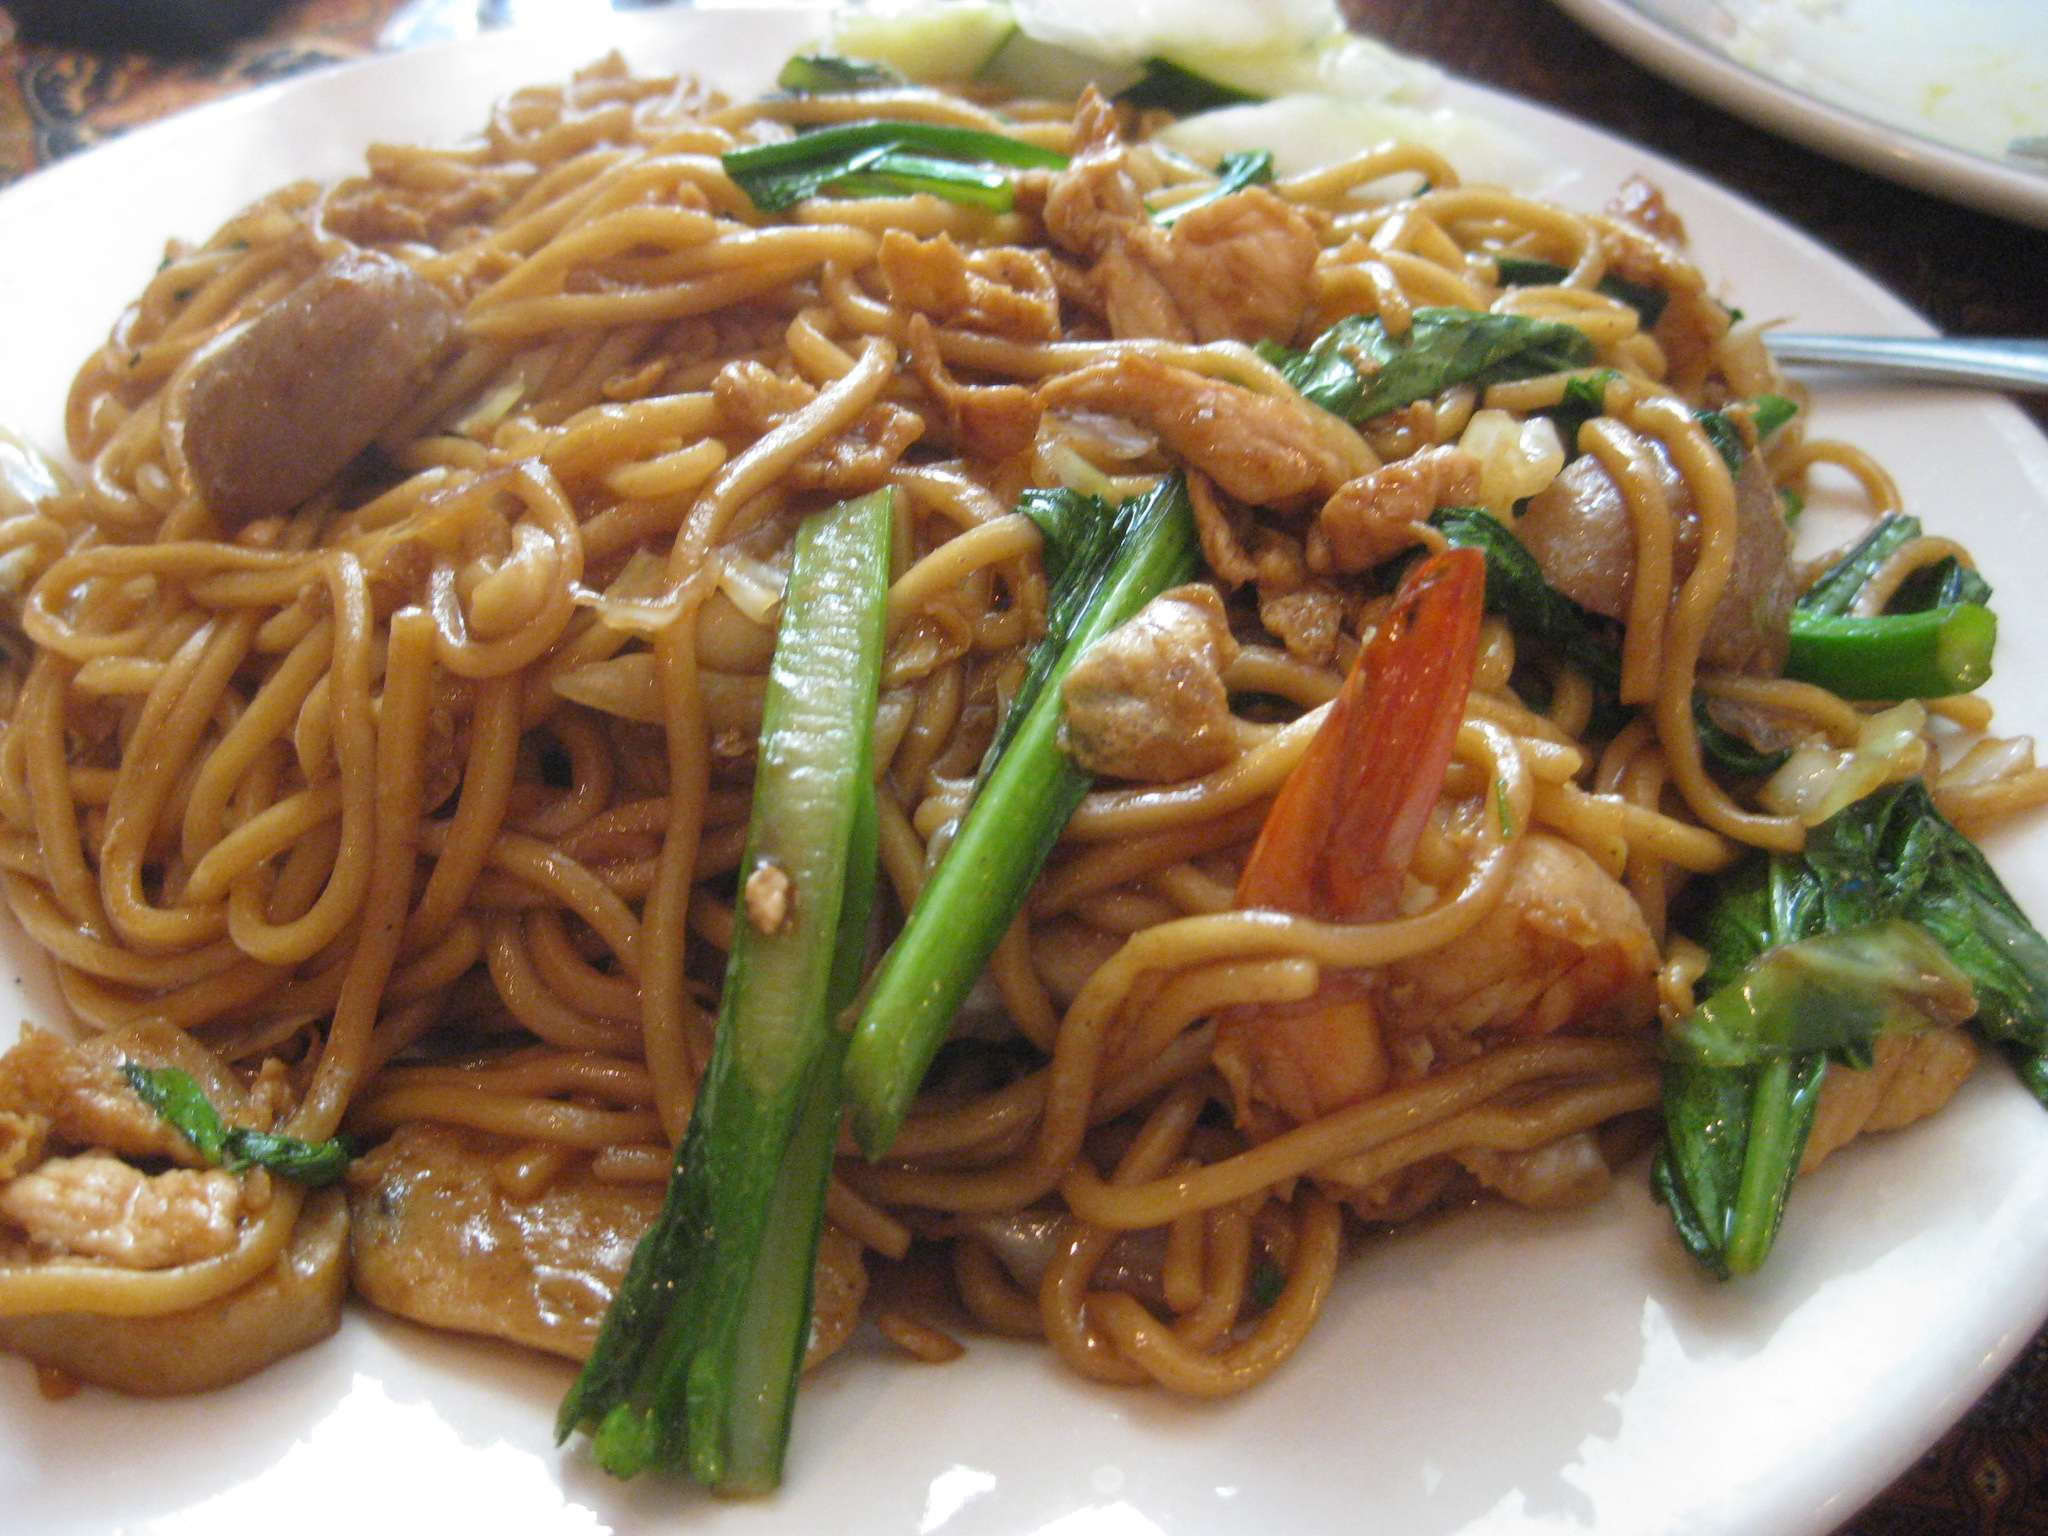 midtown noodle seafood, chicken egg the noodle with comes special fried The works;